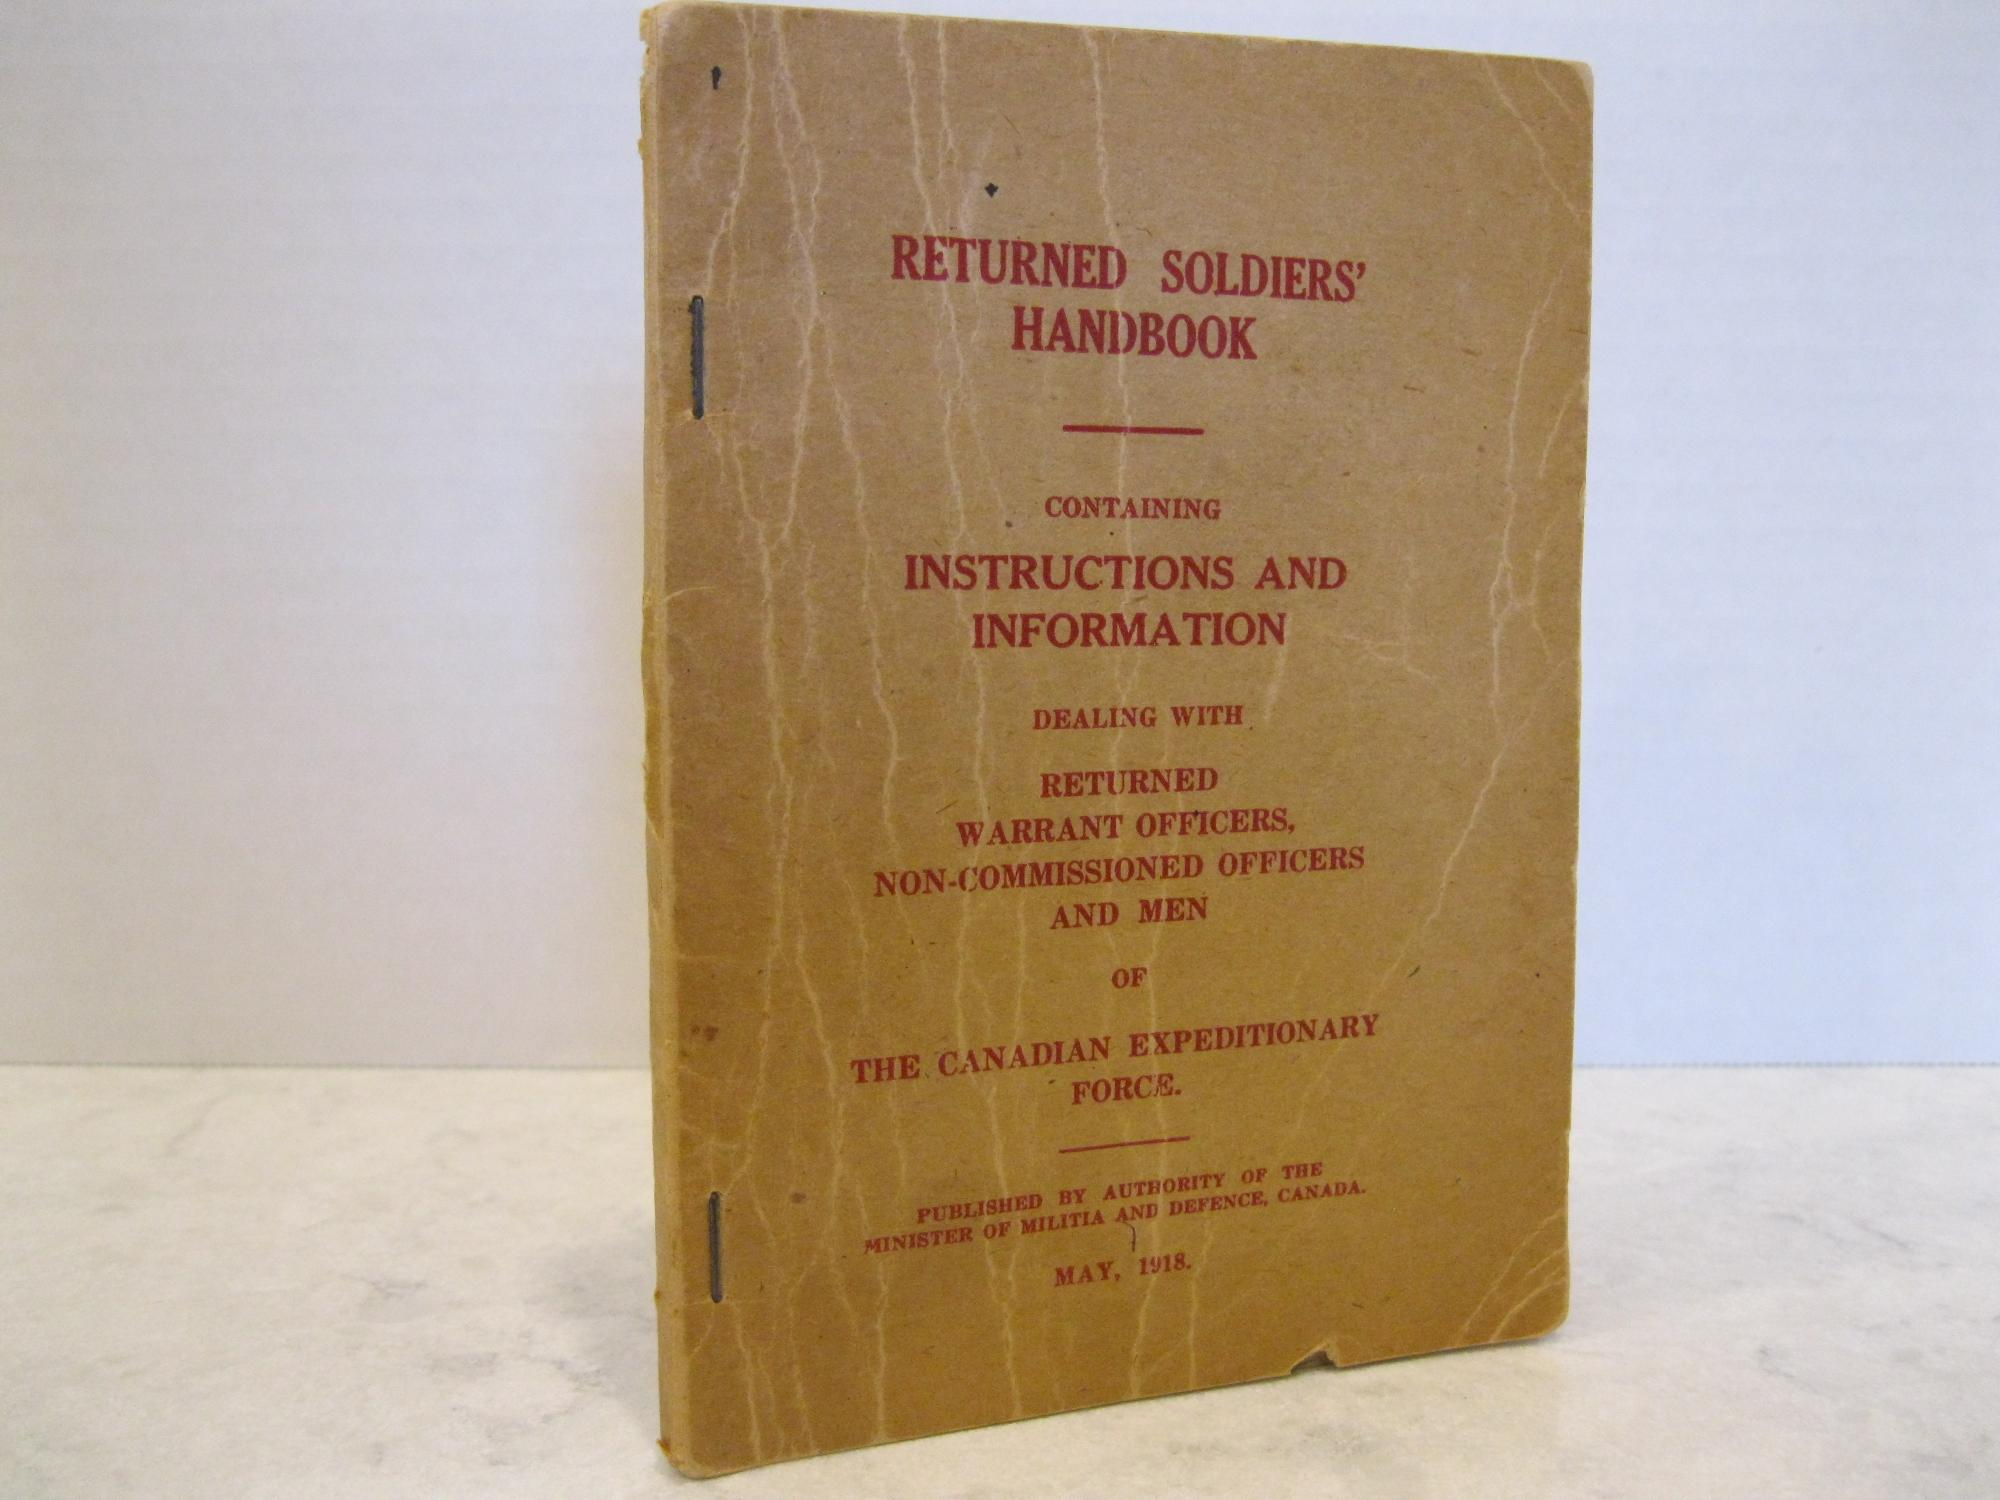 RETURNED_SOLDIER'S_HANDBOOK_CONTAINING_INSTRUCTIONS_DEALING_WITH_RETURNED_WARRANT_OFFICERS,_NON-COMMISSIONED_OFFICERS_AND_MEN_OF_THE_CANADIAN_EXPEDIT